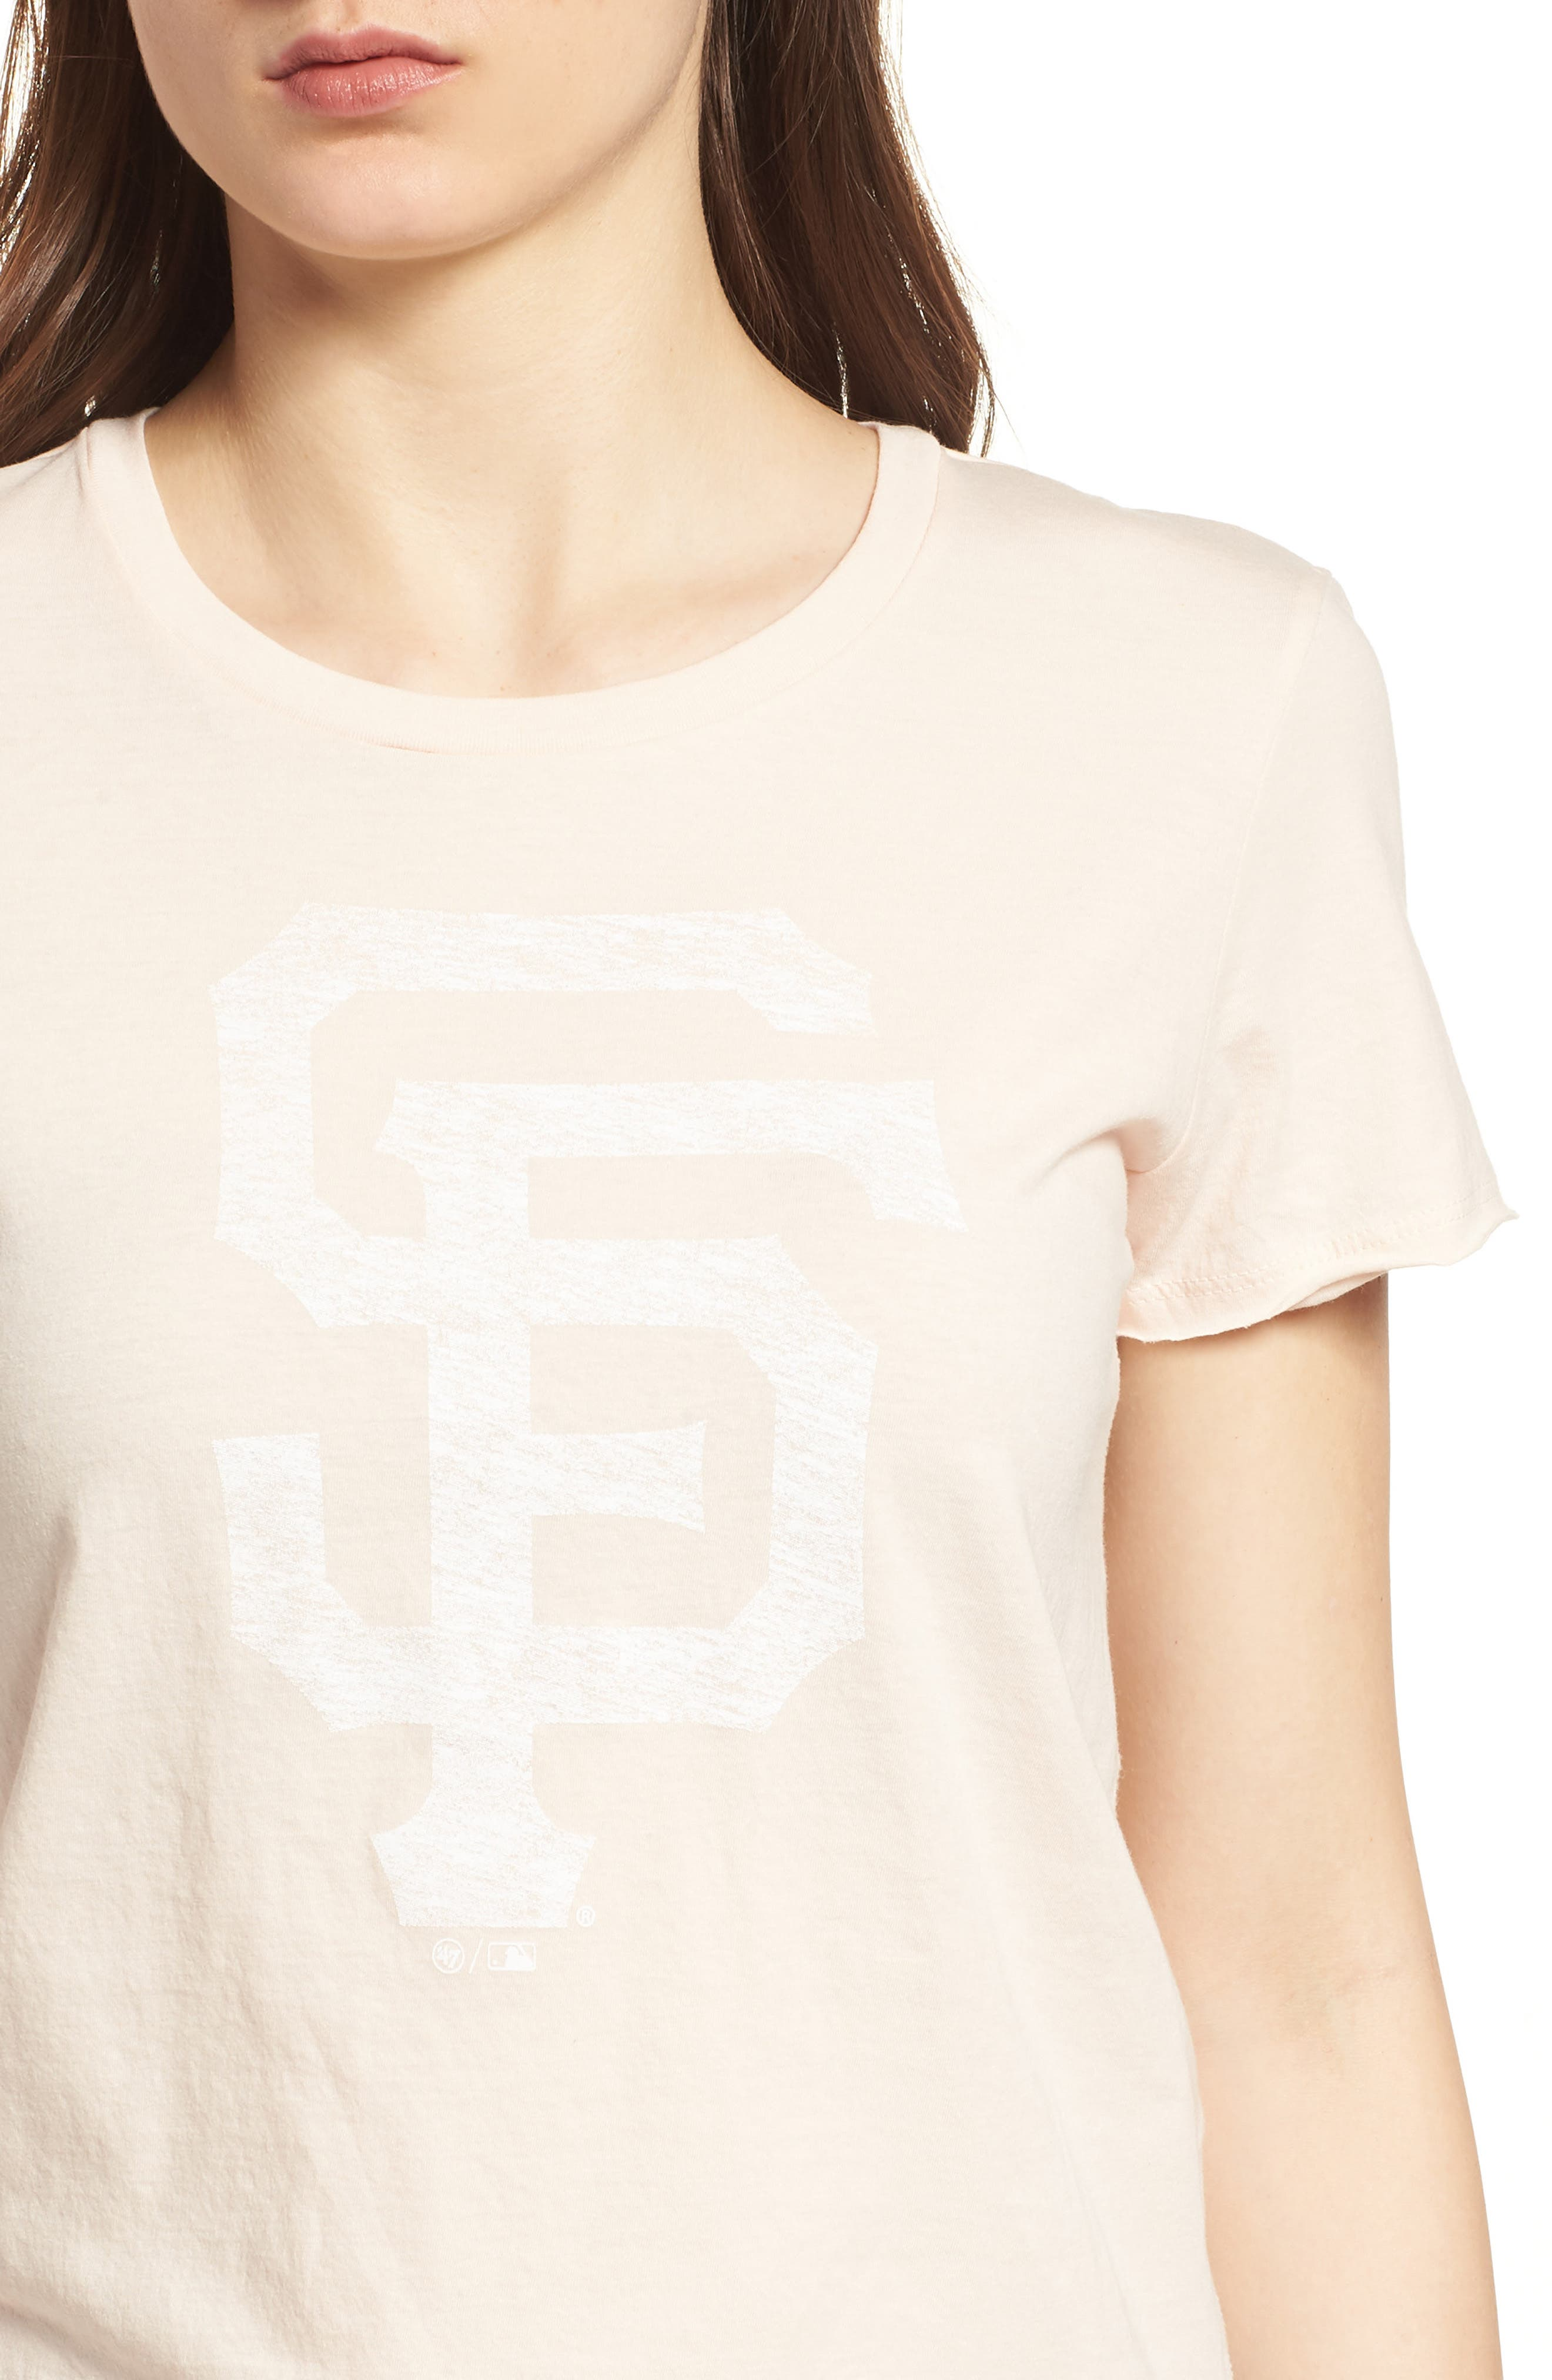 San Francisco Giants Fader Letter Tee,                             Alternate thumbnail 4, color,                             650